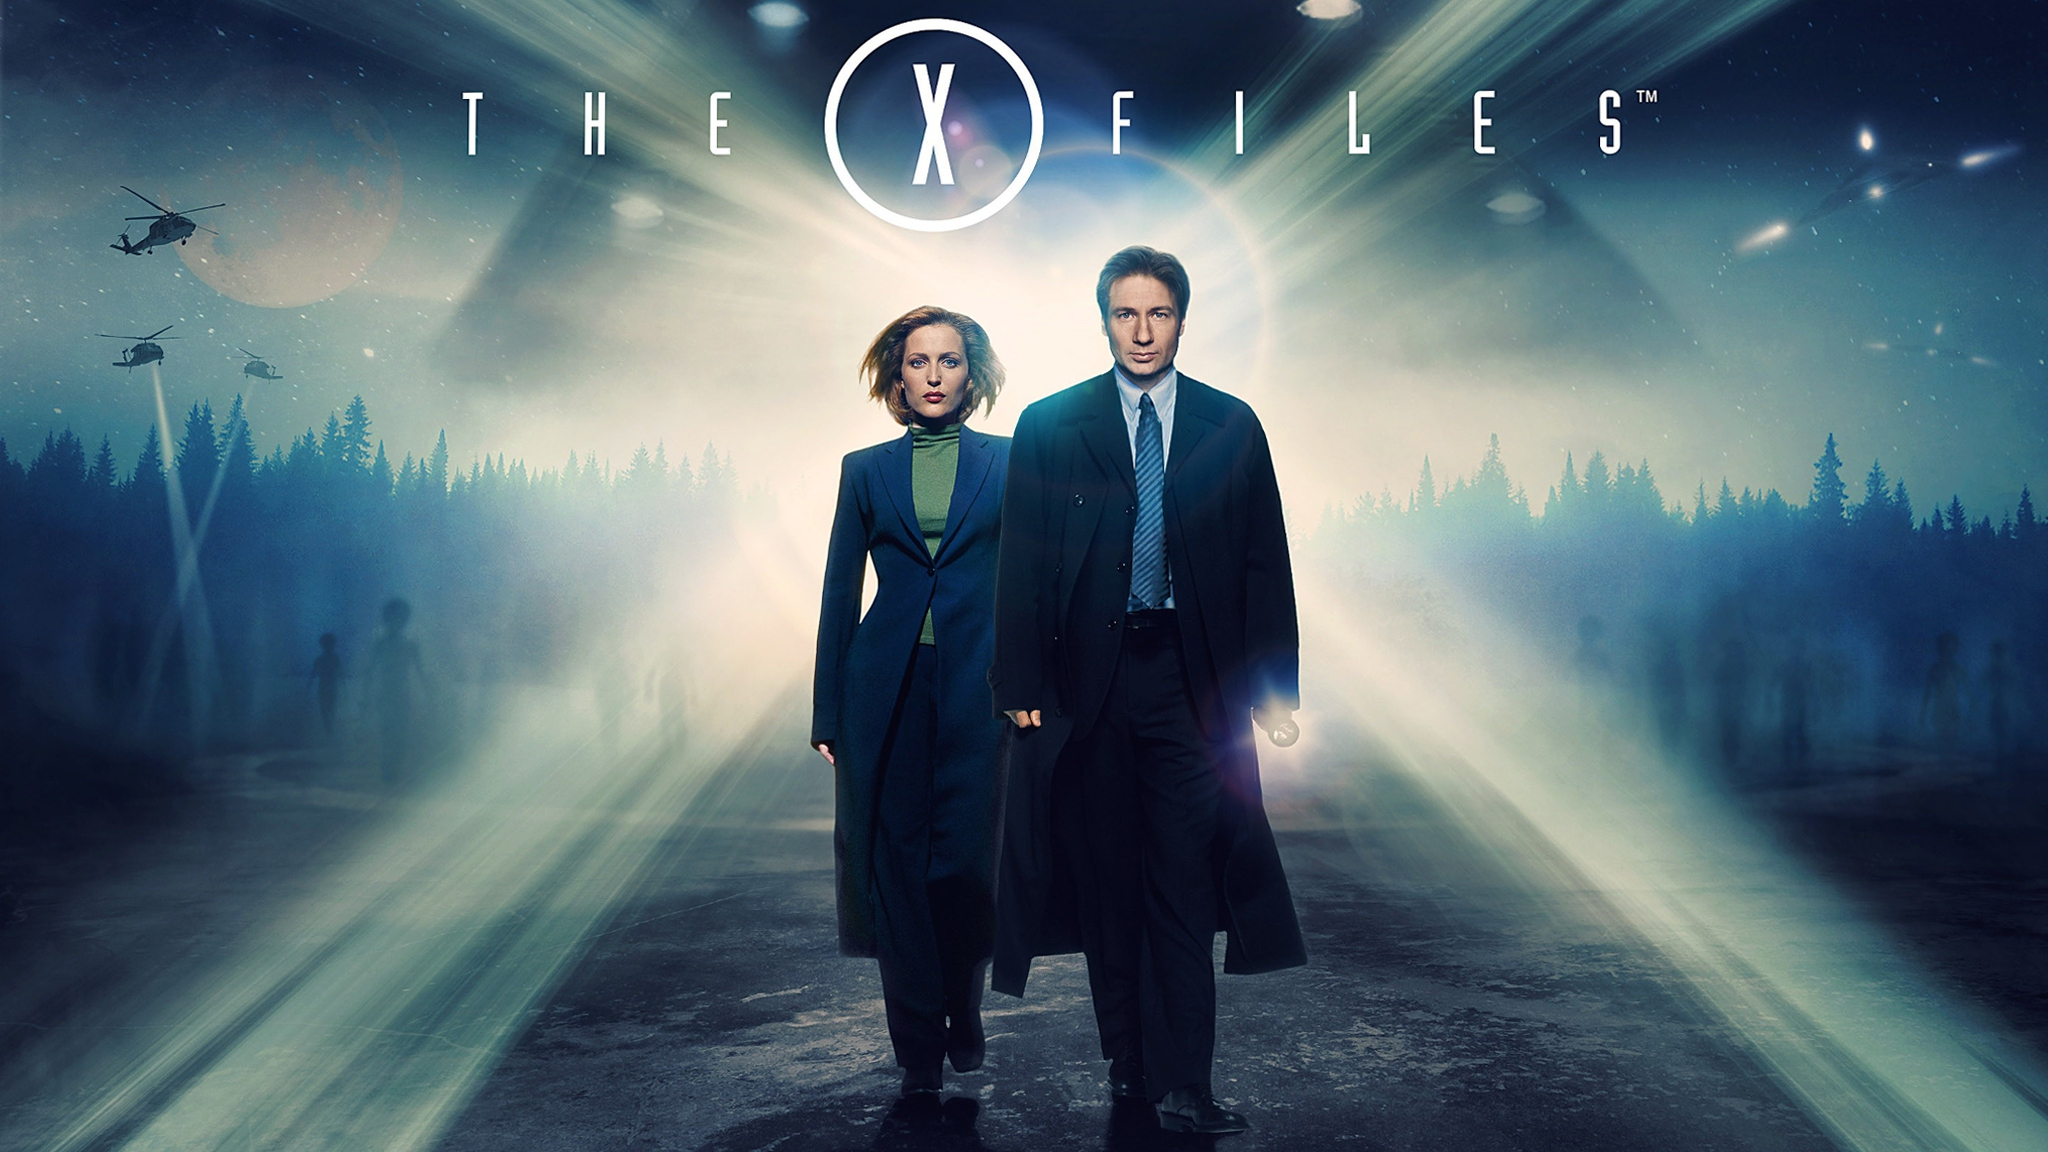 the-x-files-wallpapers-31736-2648522.jpg